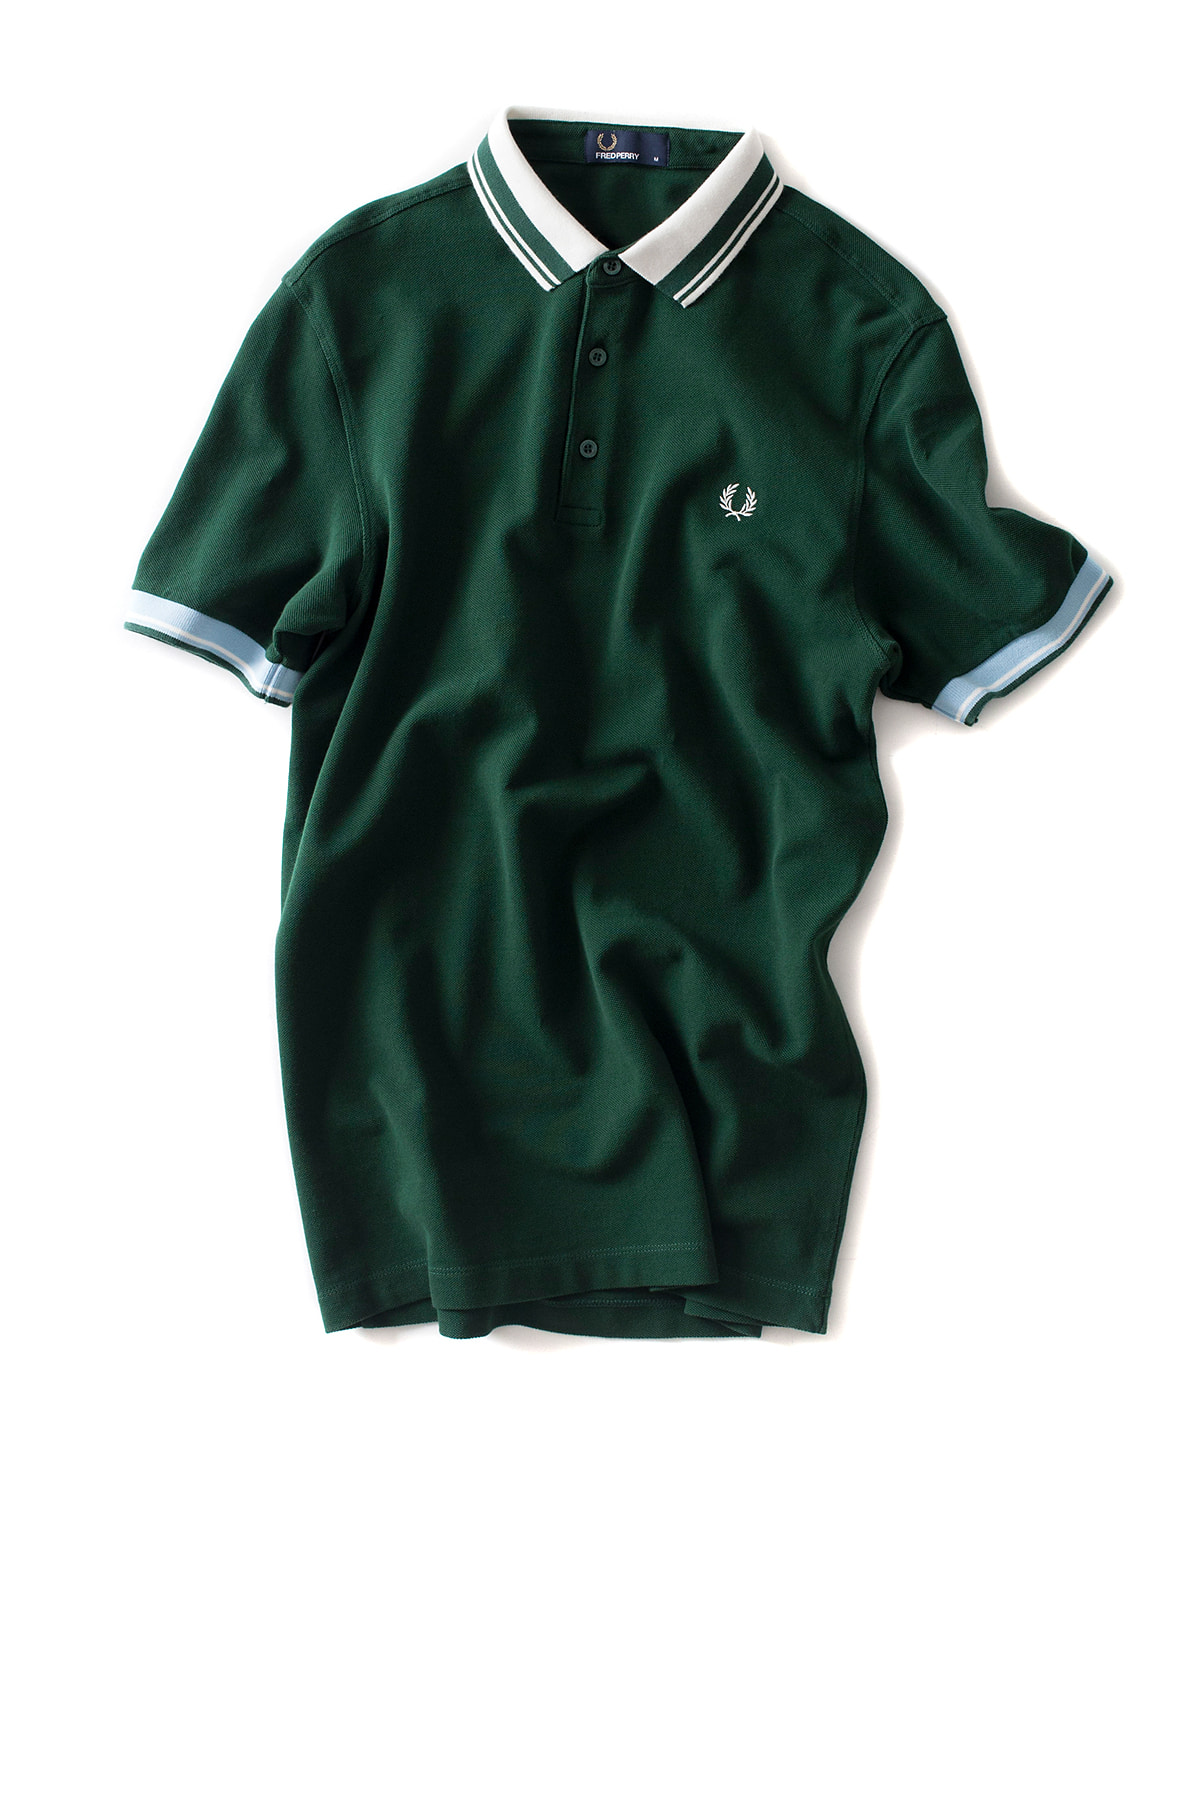 FRED PERRY : Contrast Collar Pique Shirt (IVY)